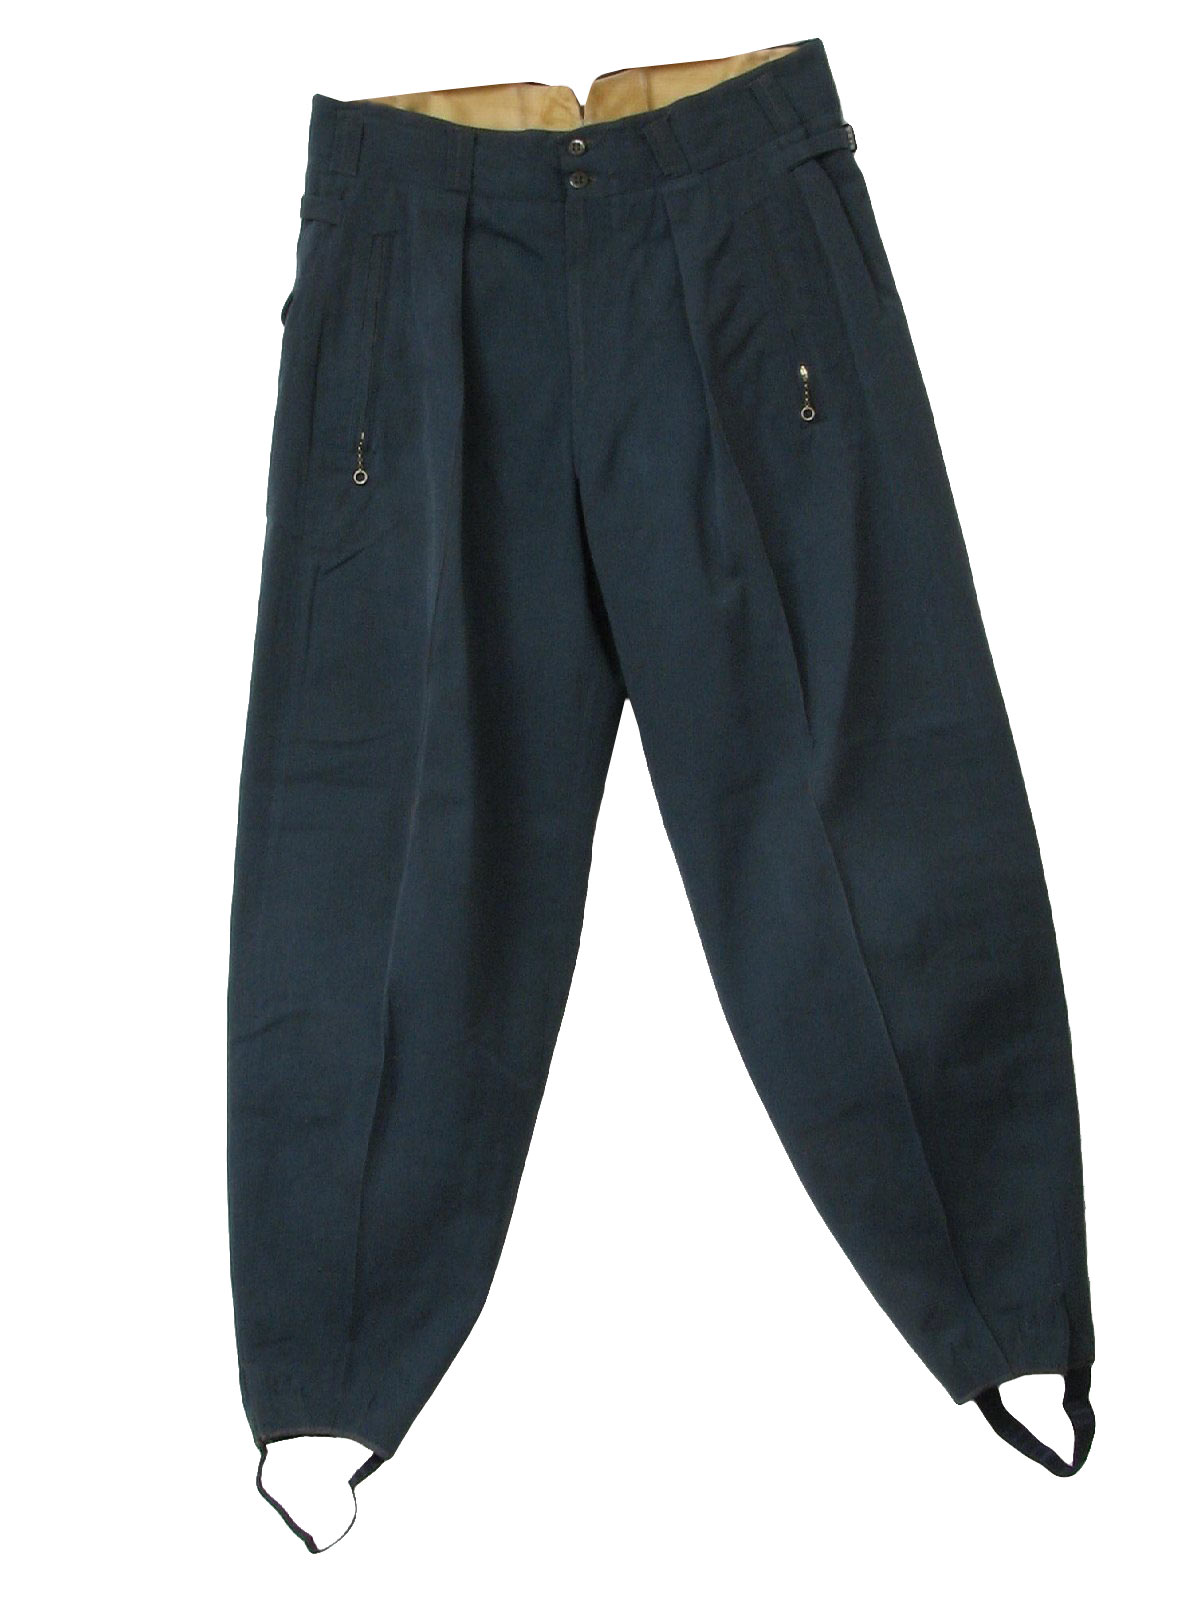 834254d0c9 Vintage Sun Valley Authentic Ski Wear Forties Pants  Late 40s -Sun ...